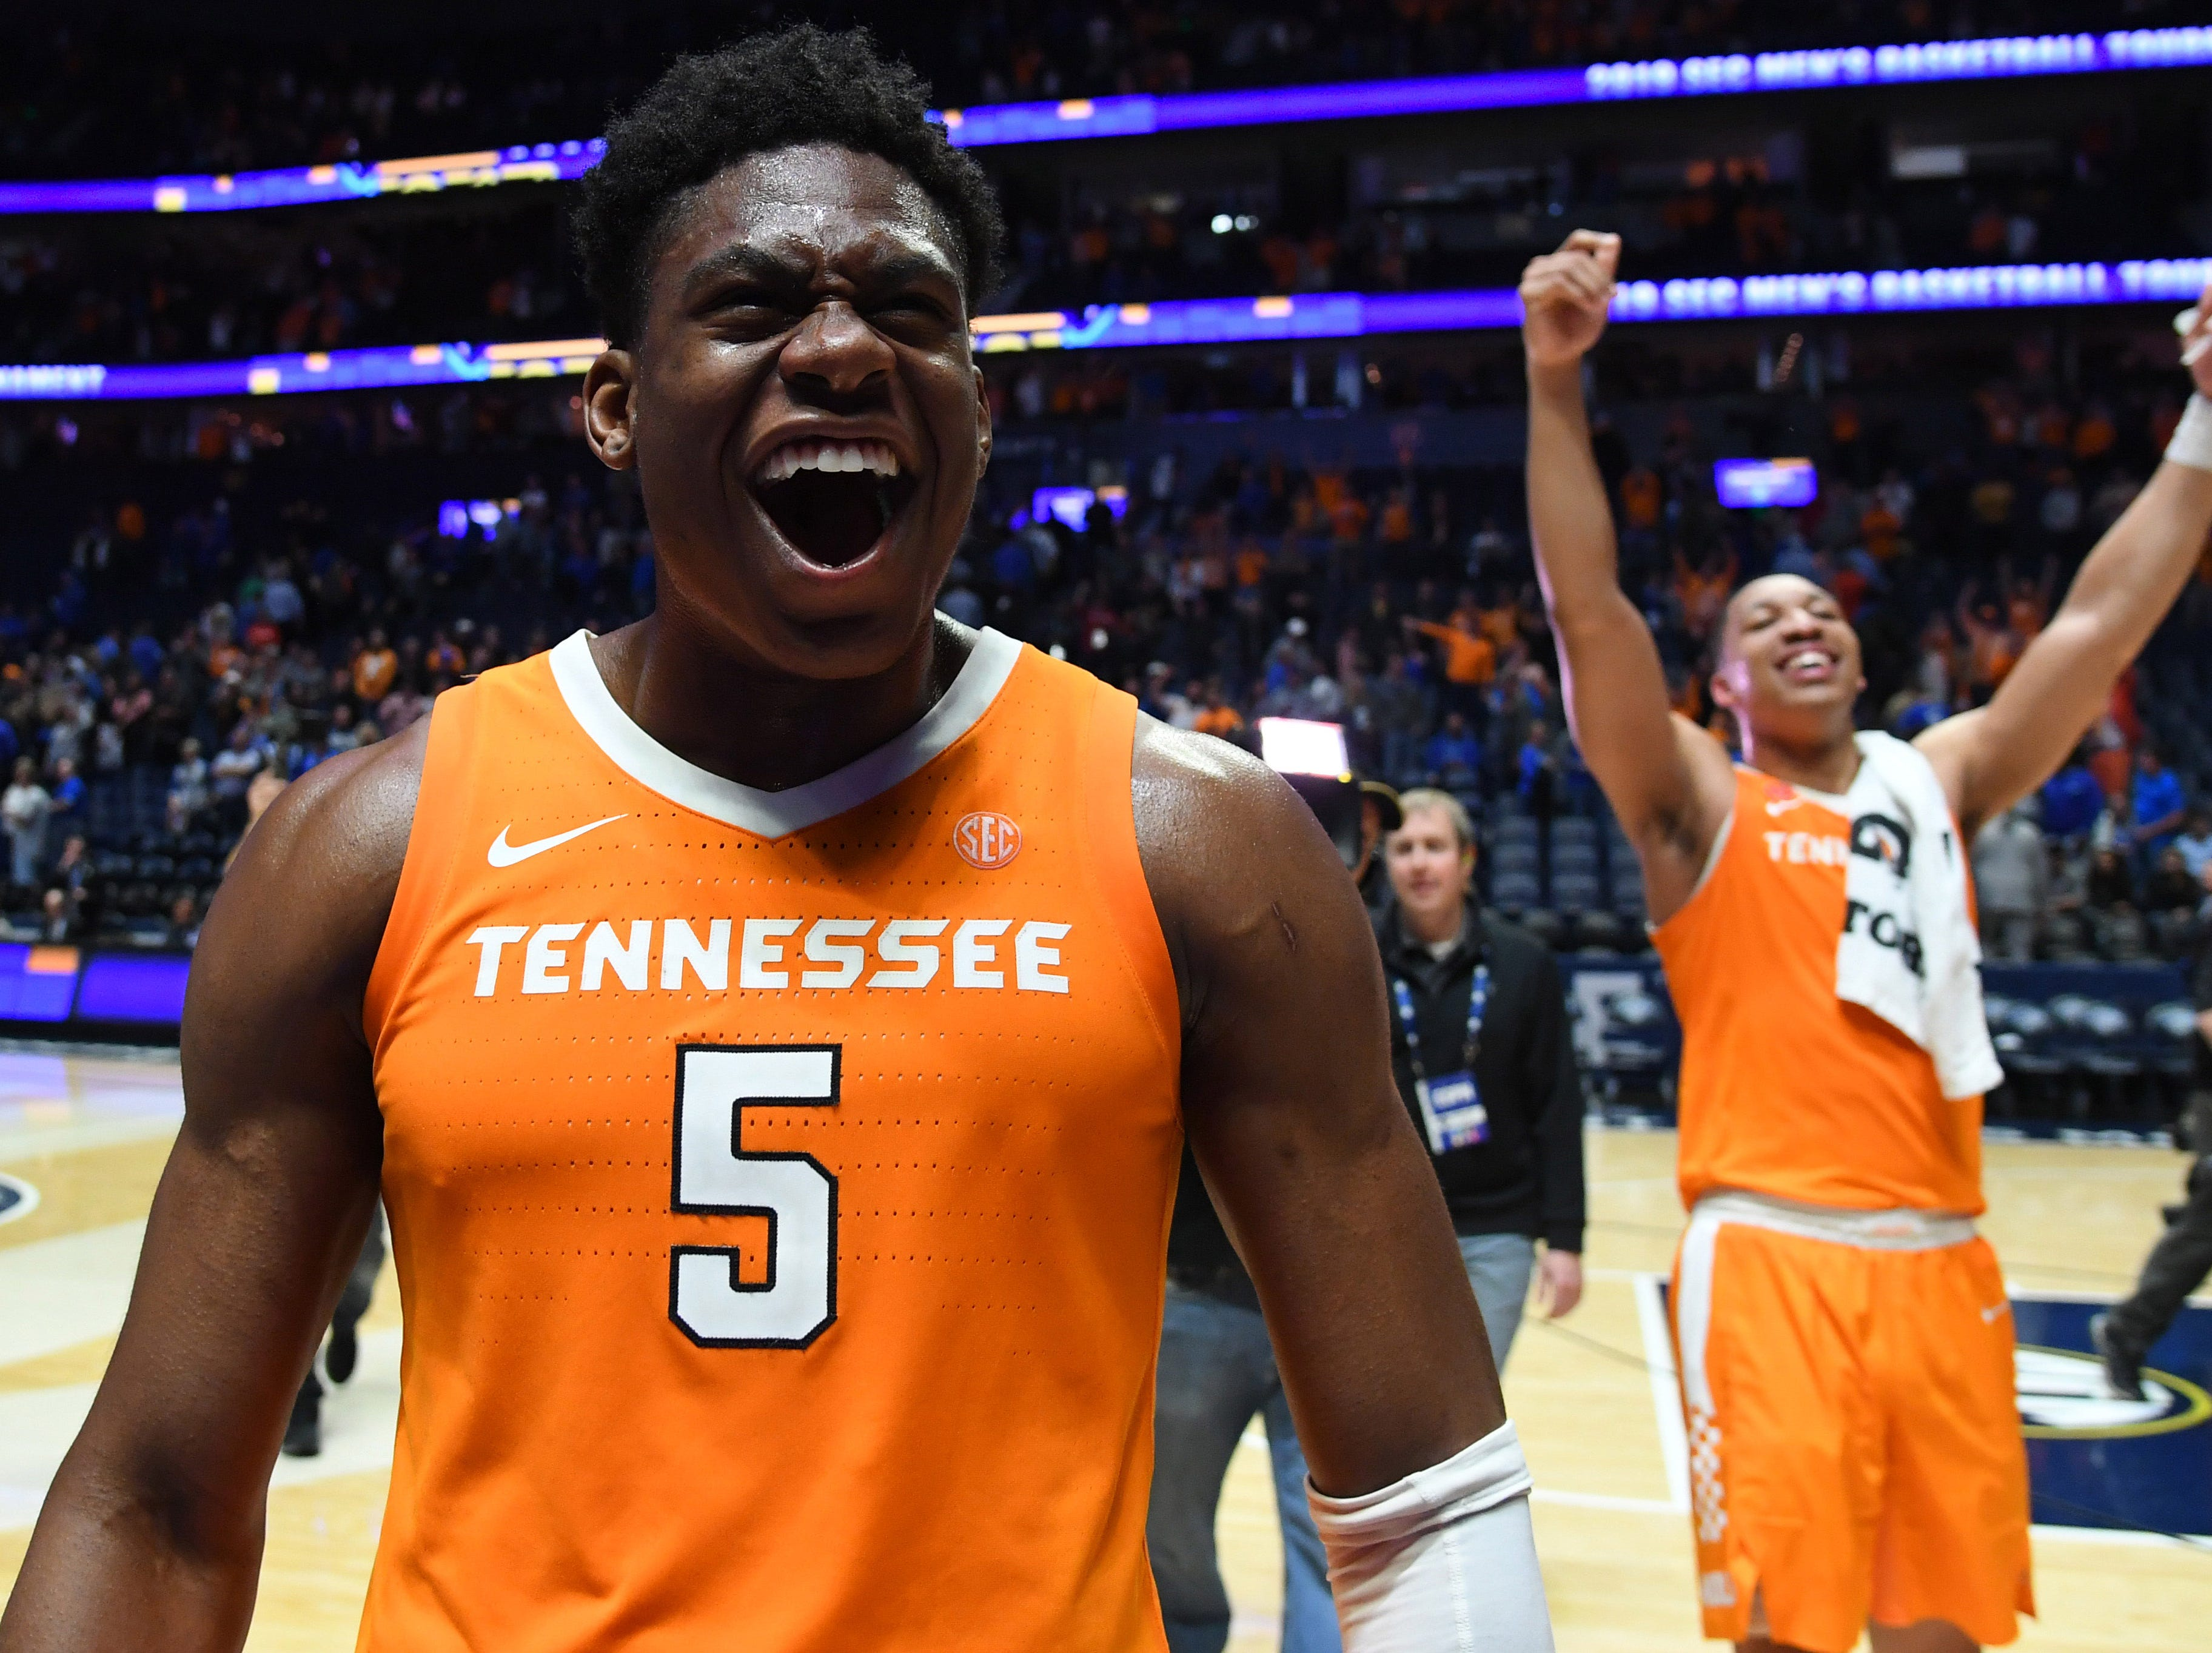 Tennessee (29-5), No. 2 seed in South, at-large bid out of Southeastern Conference.